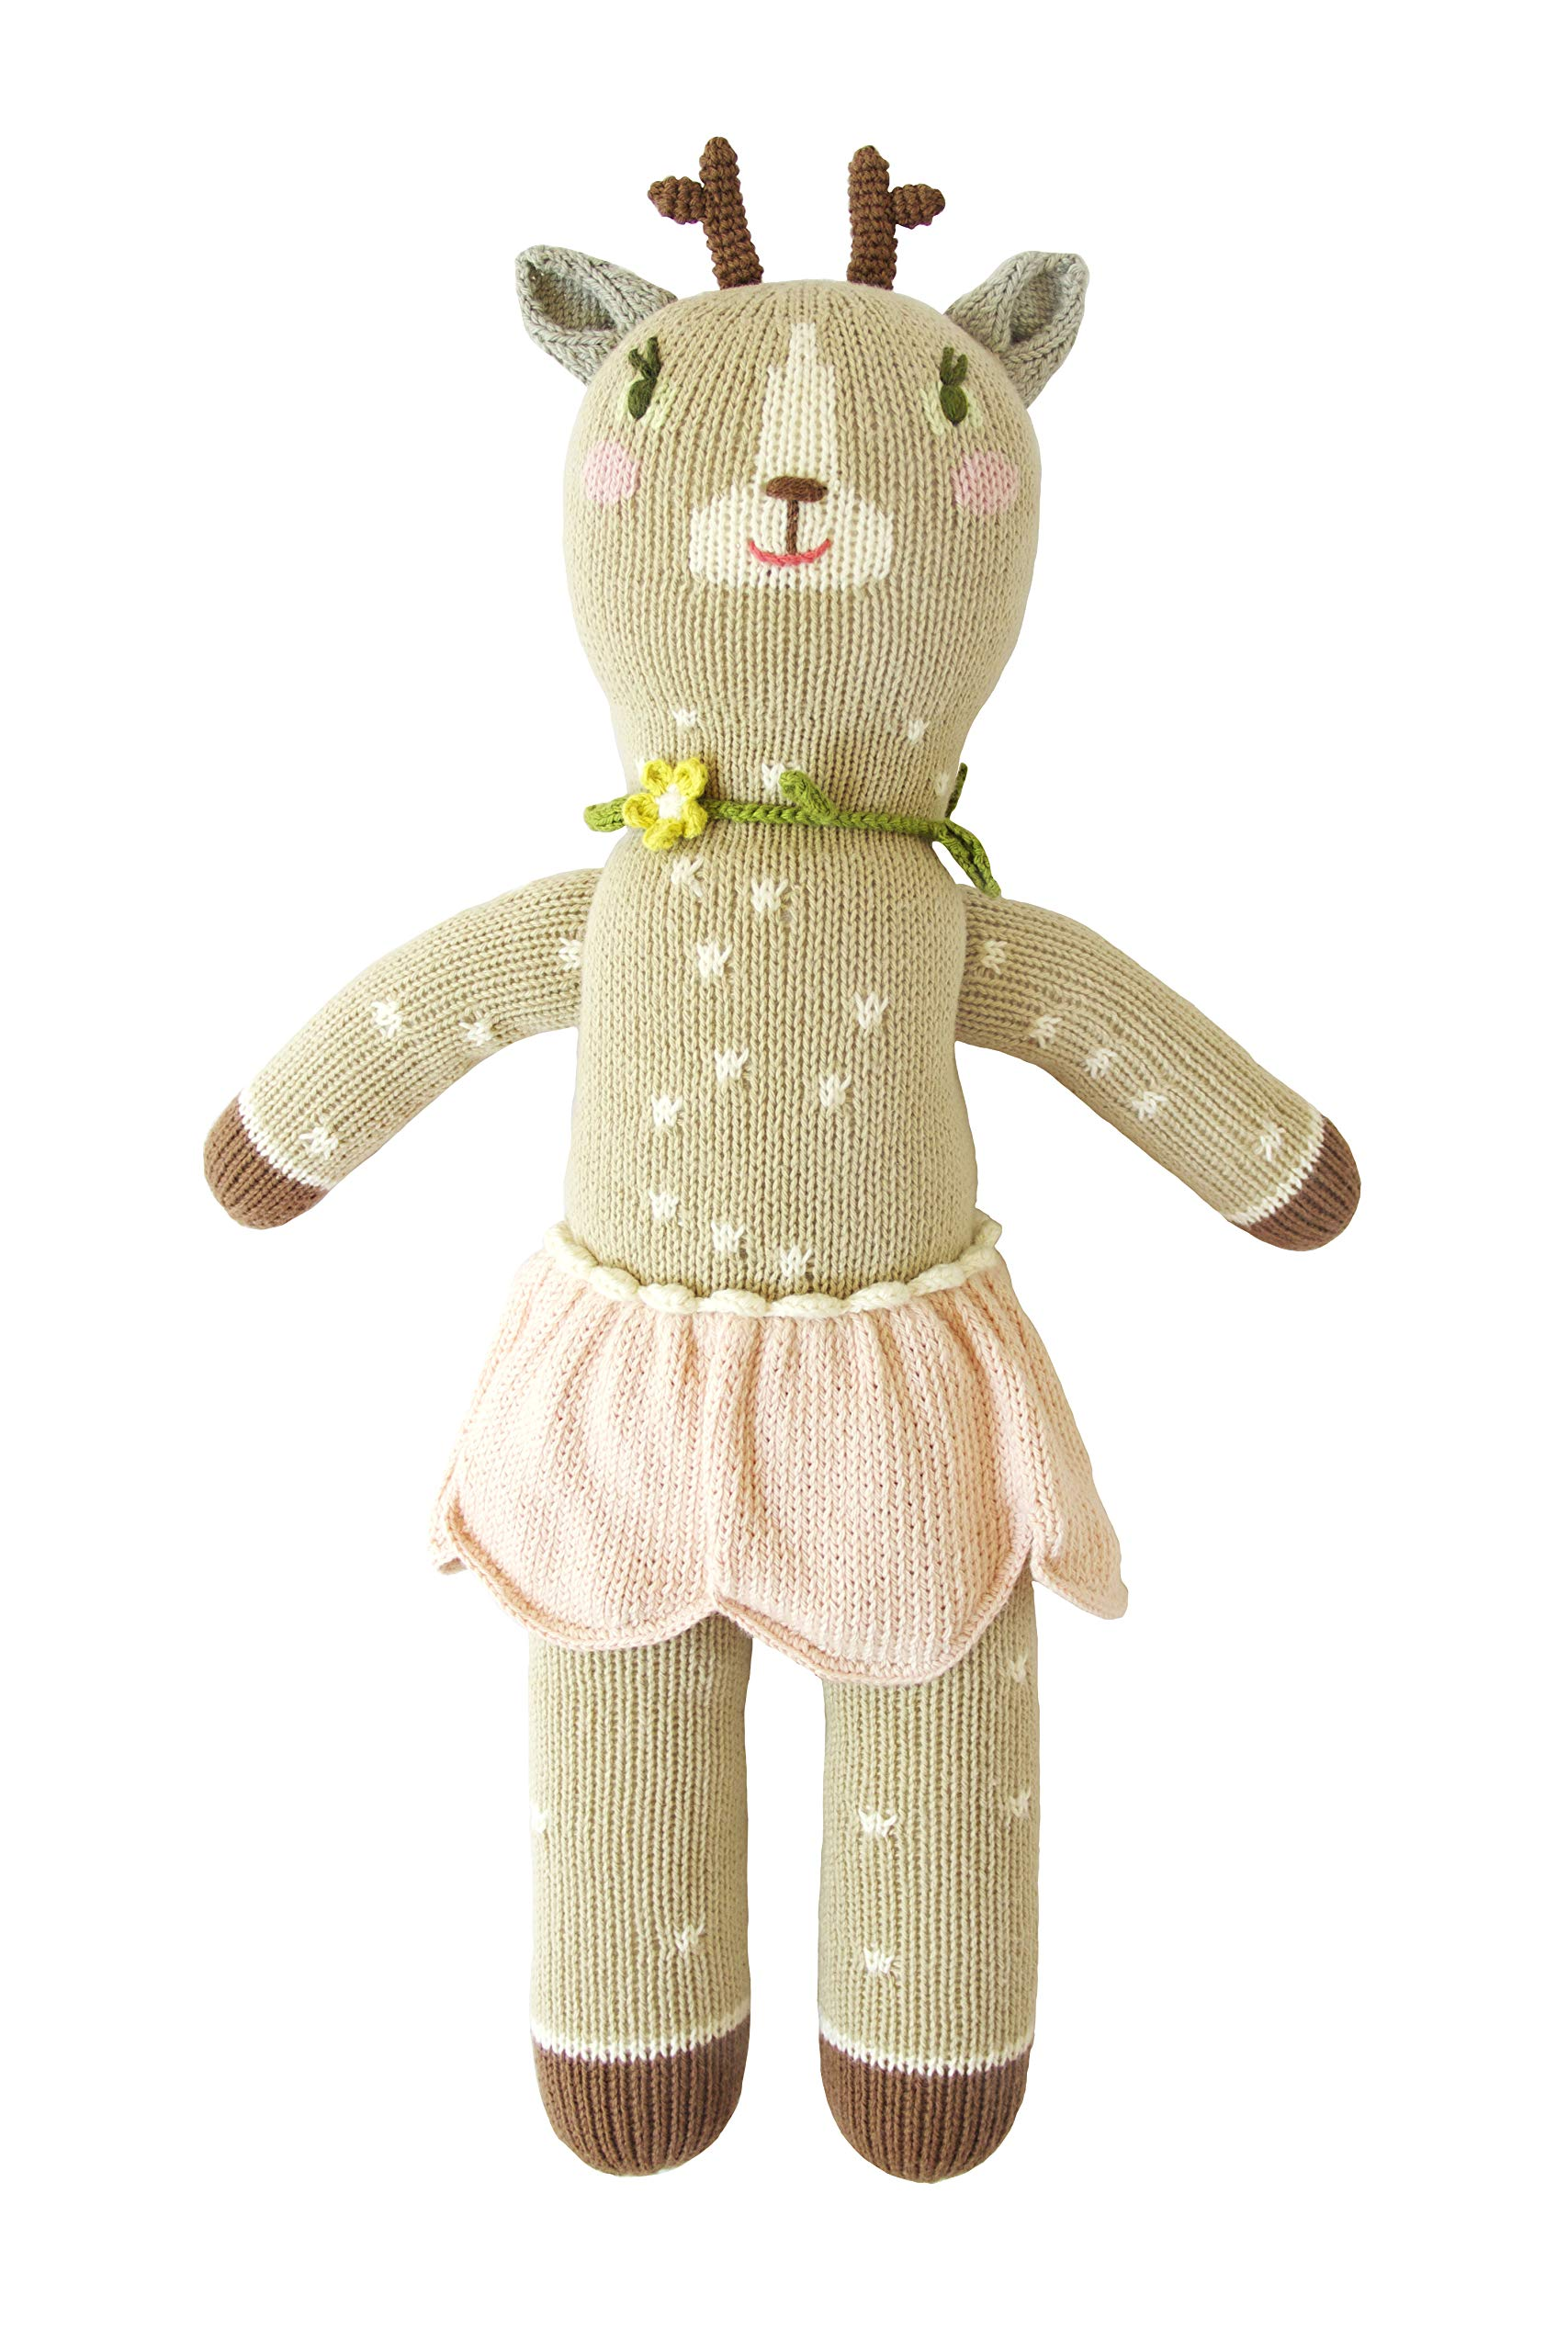 Blabla Hazel The Deer Plush Doll - Knit Stuffed Animal for Kids. Cute, Cuddly & Soft Cotton Toy. Perfect, Forever Cherished. Eco-Friendly. Certified Safe & Non-Toxic.